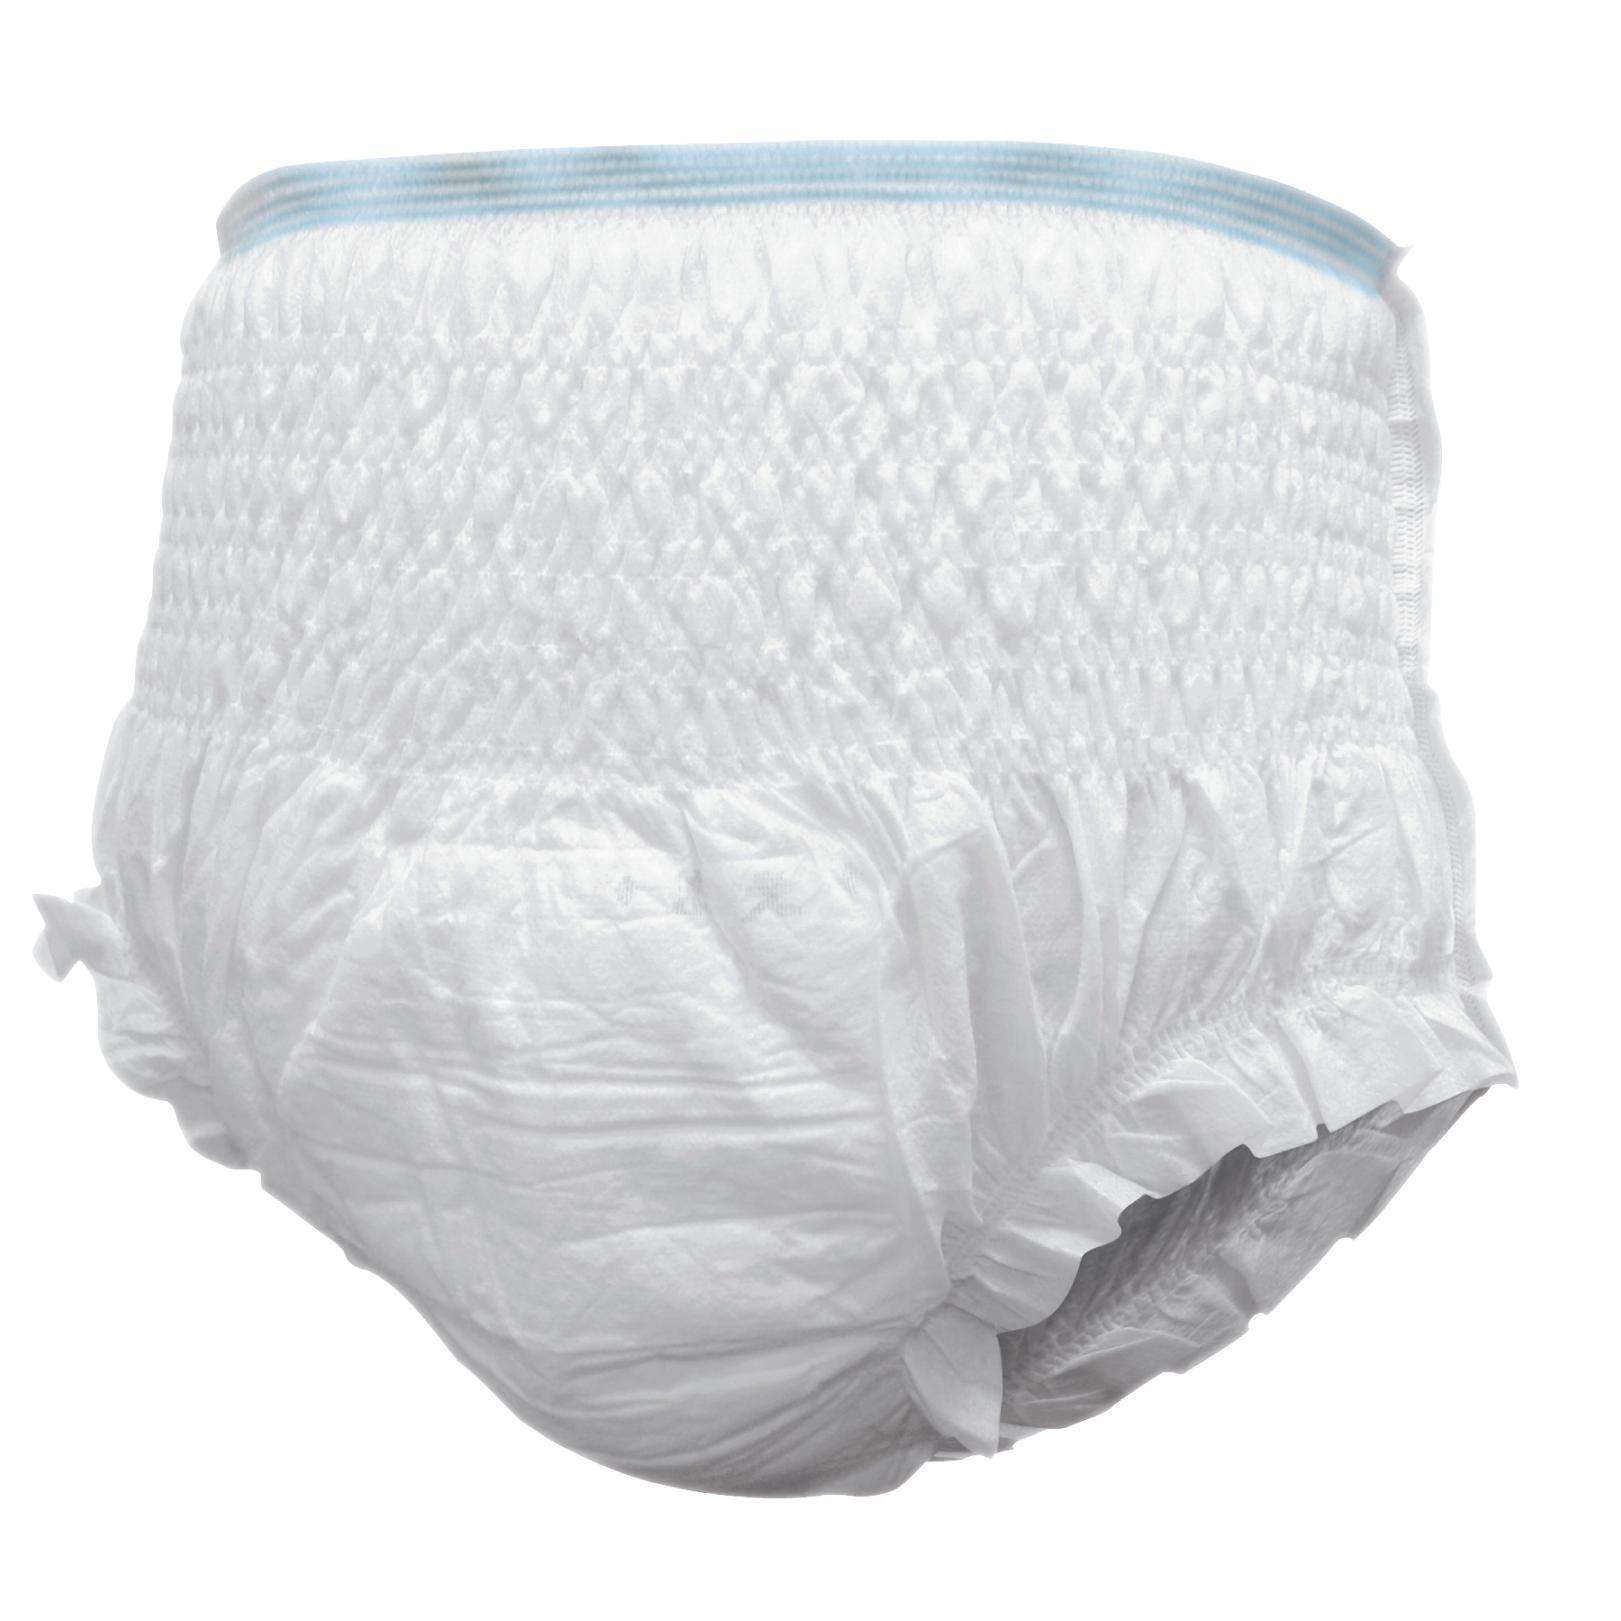 Protection Couche Adulte Hot Item Culotte Comme Adulte Couches De Pull Ups